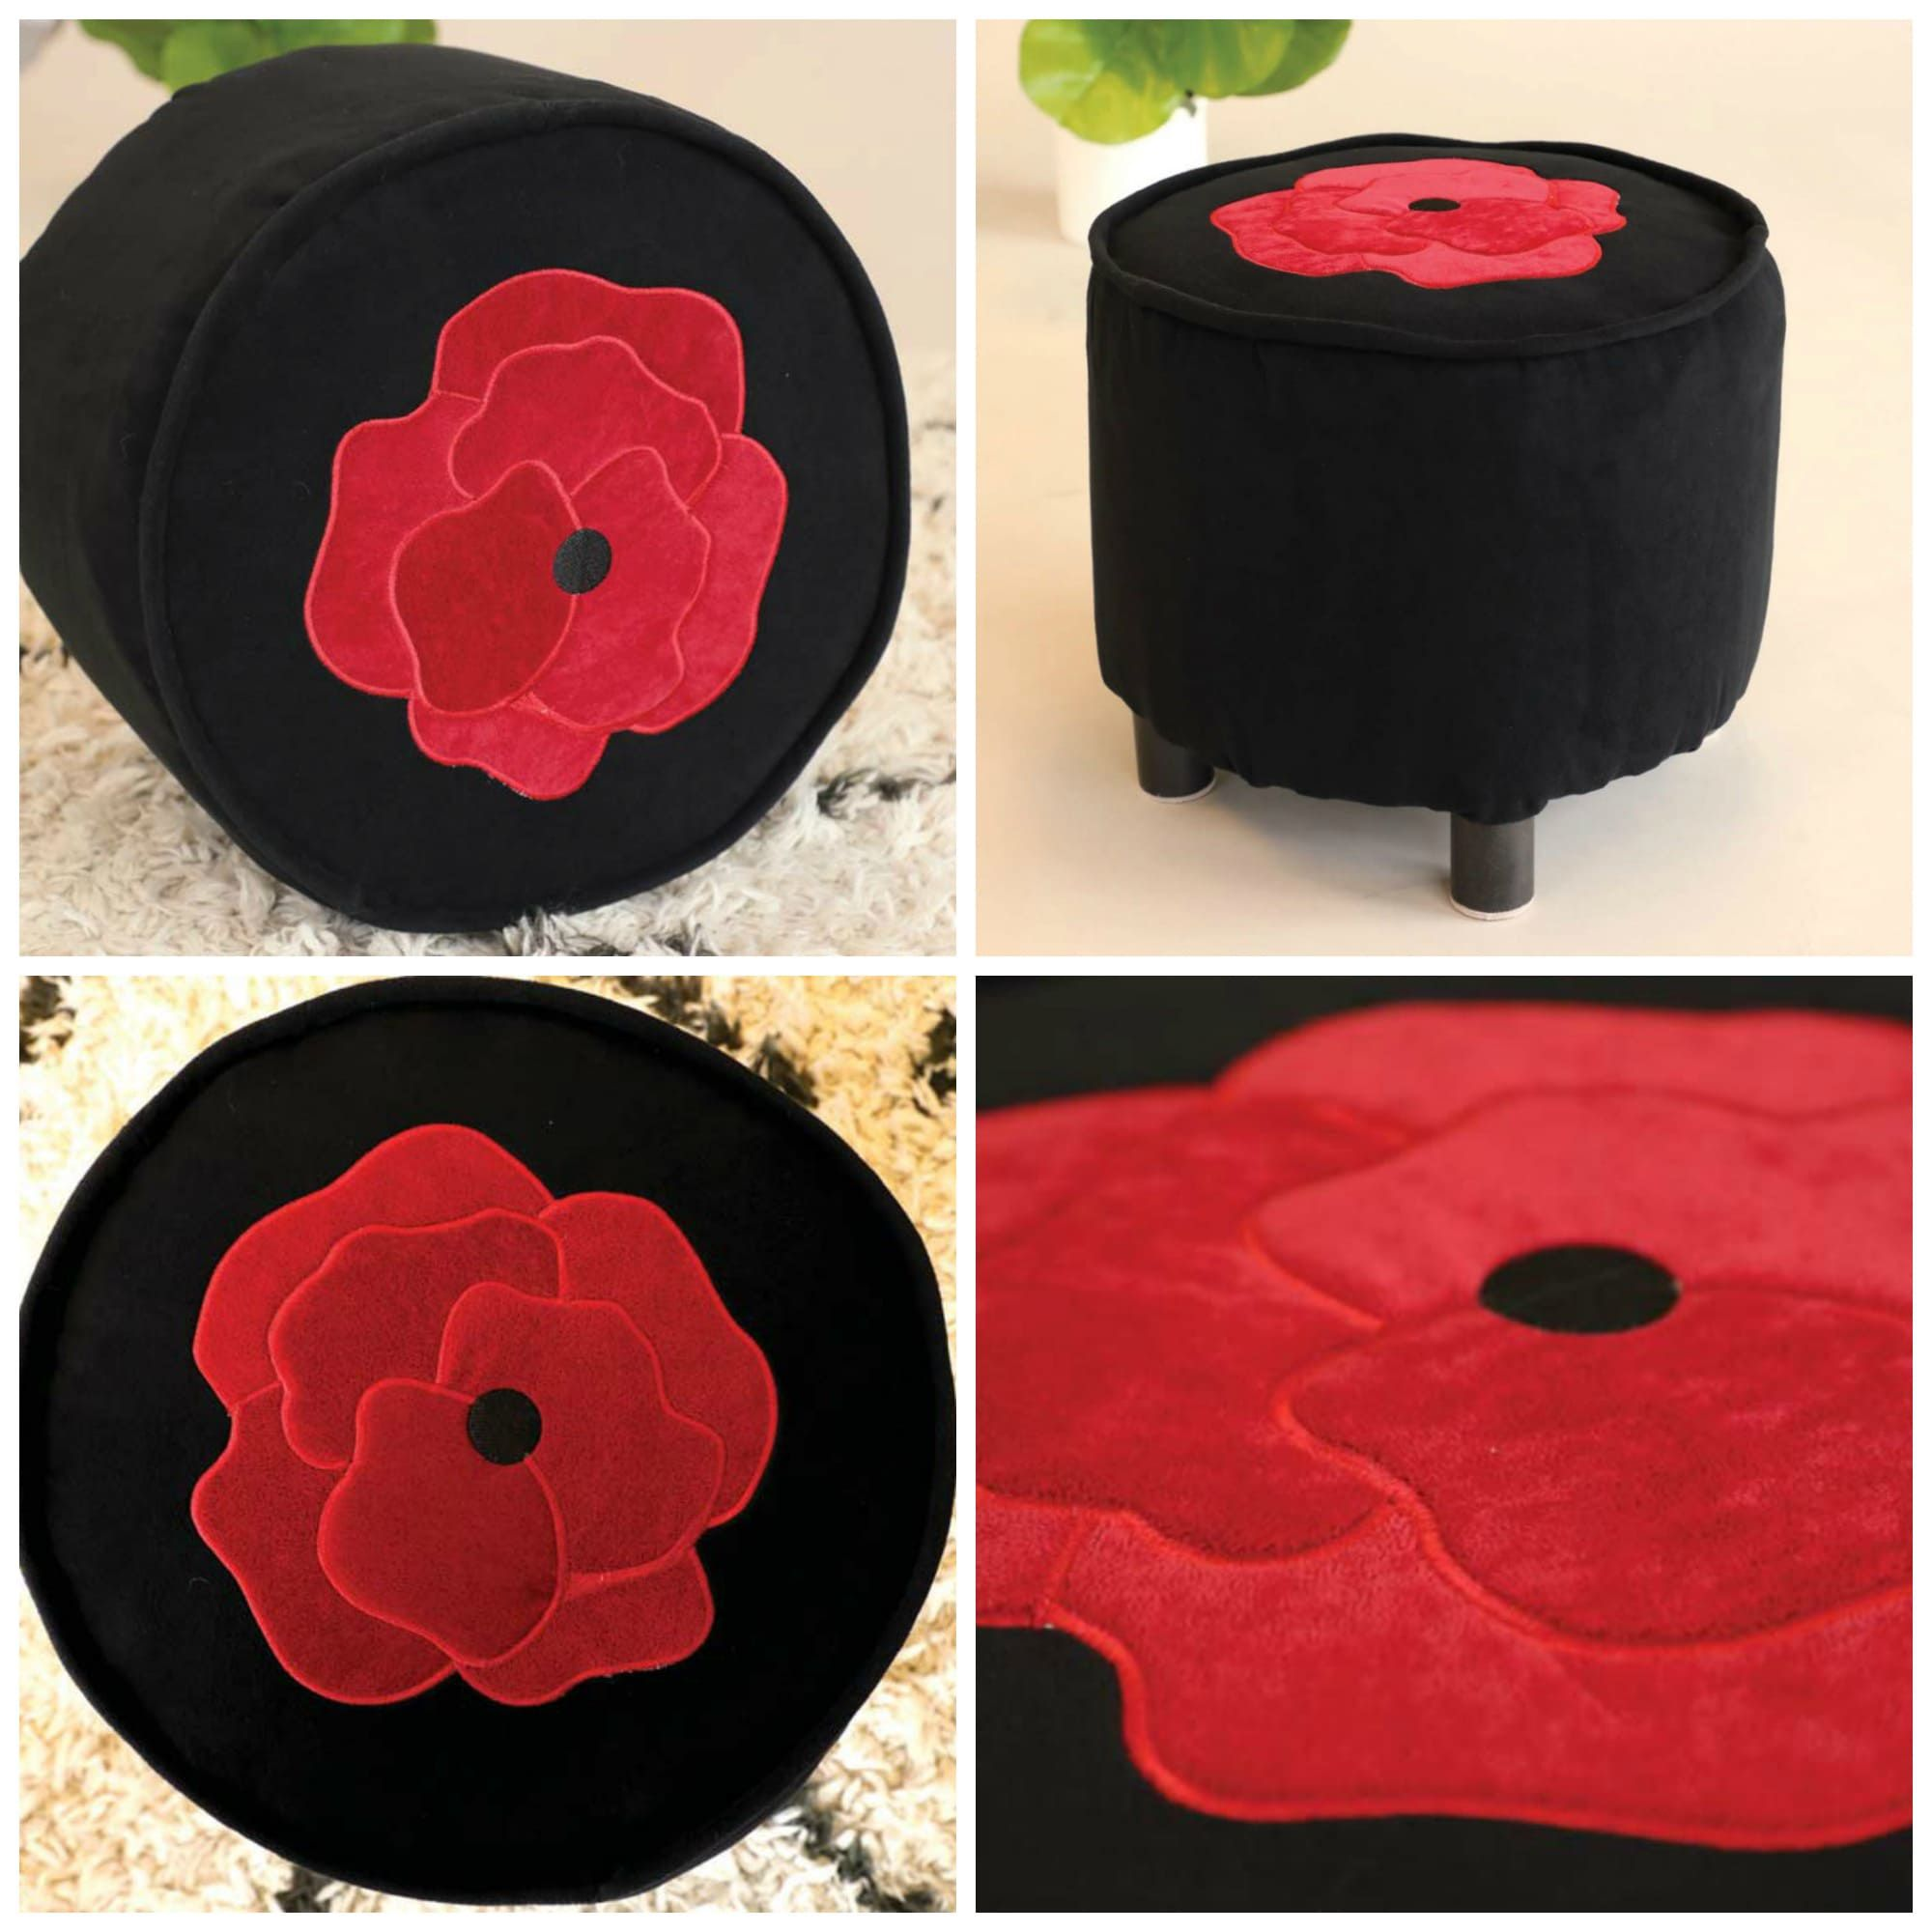 A black pouf with a bright red peony in machine embroidery on top.